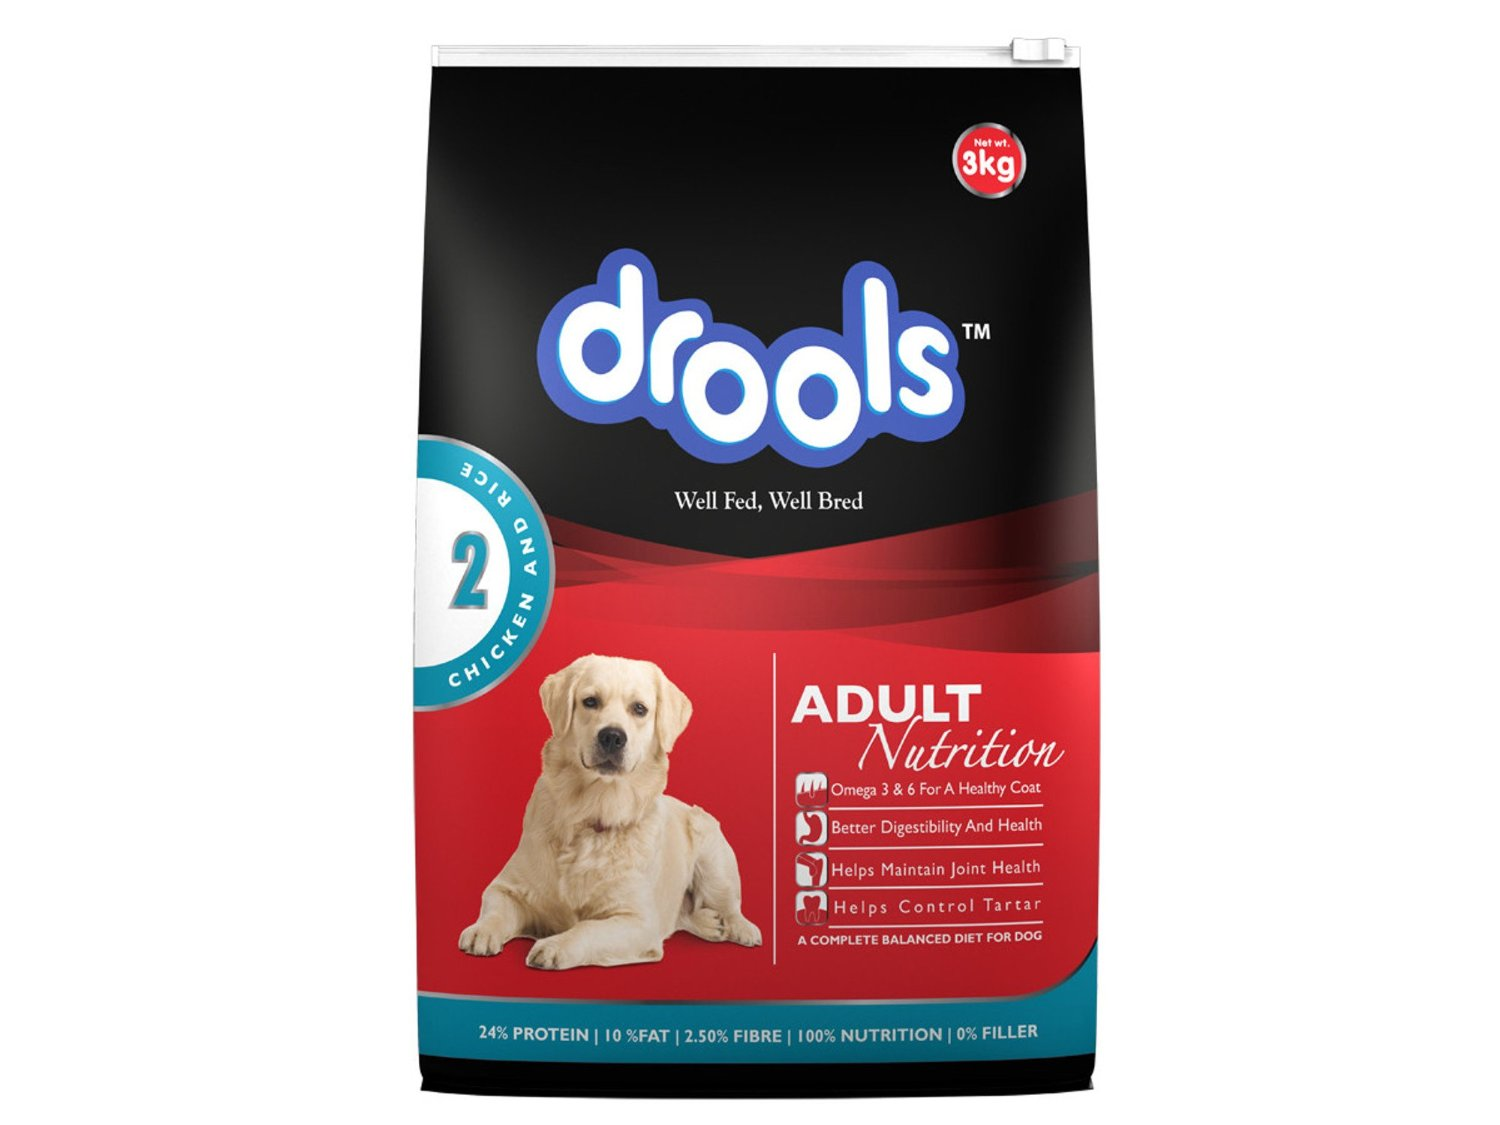 Drools Complete Nutrition for Adult 100 Percent Vegetarian